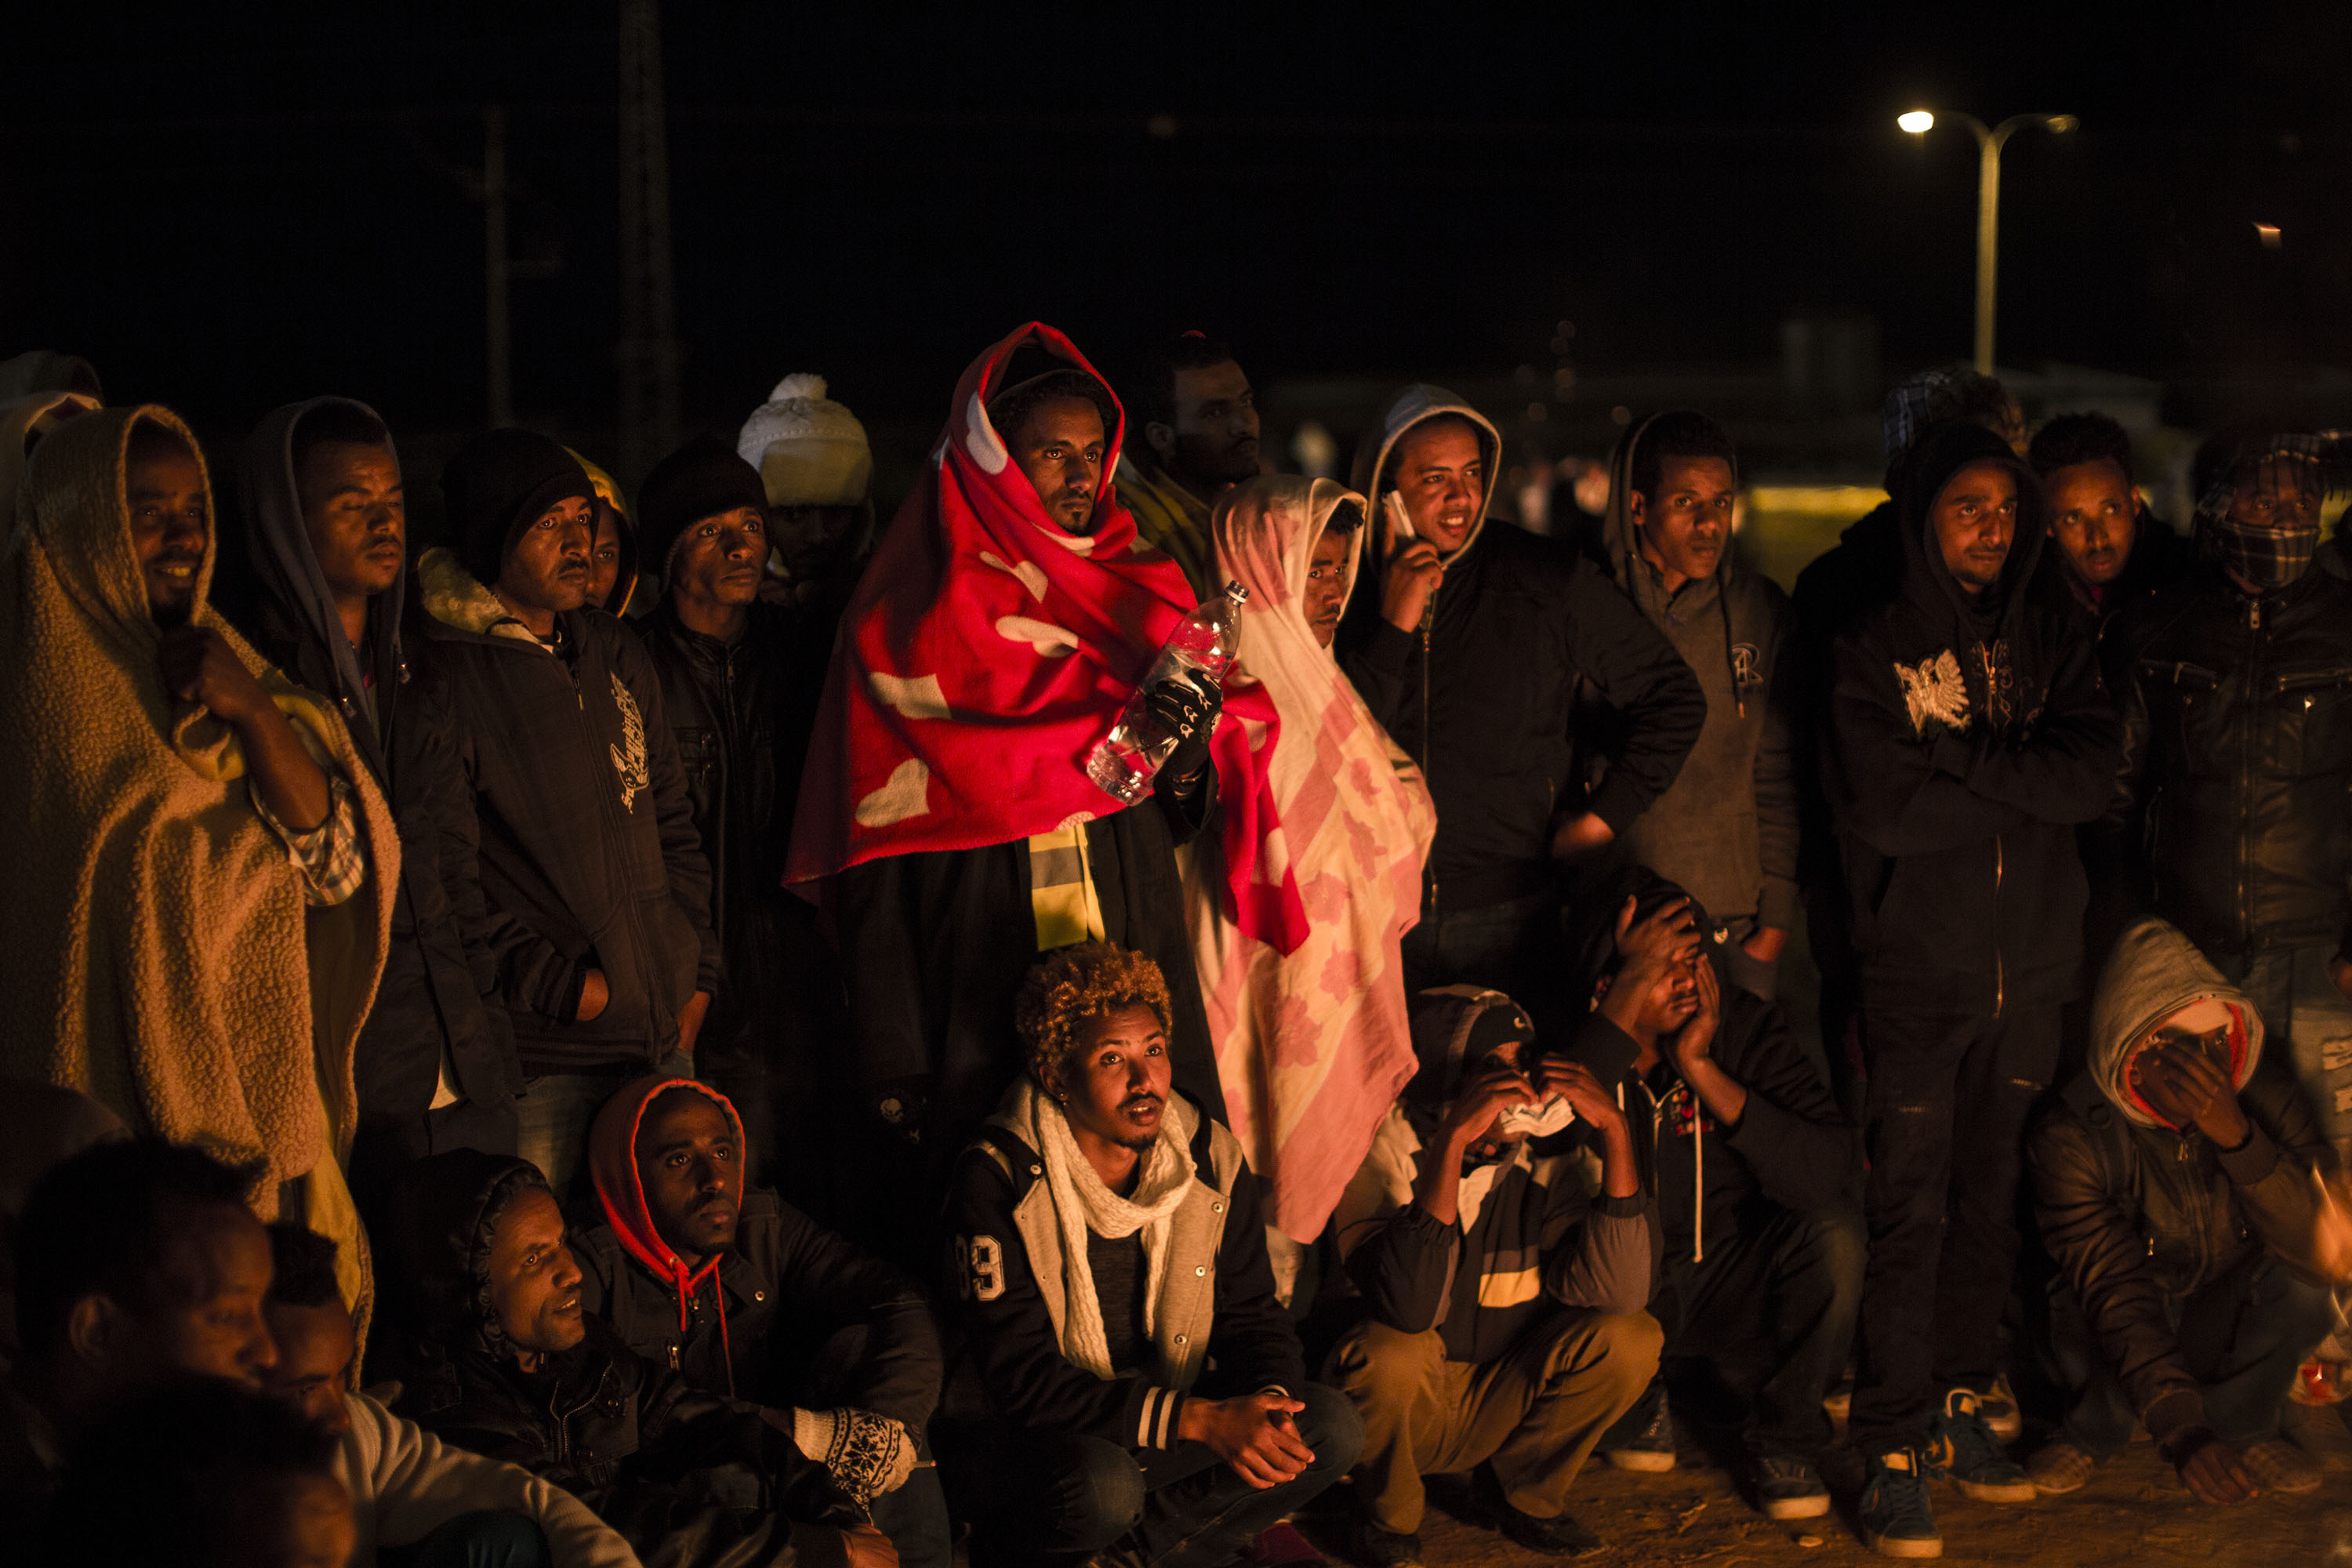 African refugees protesting outside the Holot detention center in the southern Negev Desert, Feb. 18, 2014. (Photo/JTA-Ilia Yefimovich-Getty Images)